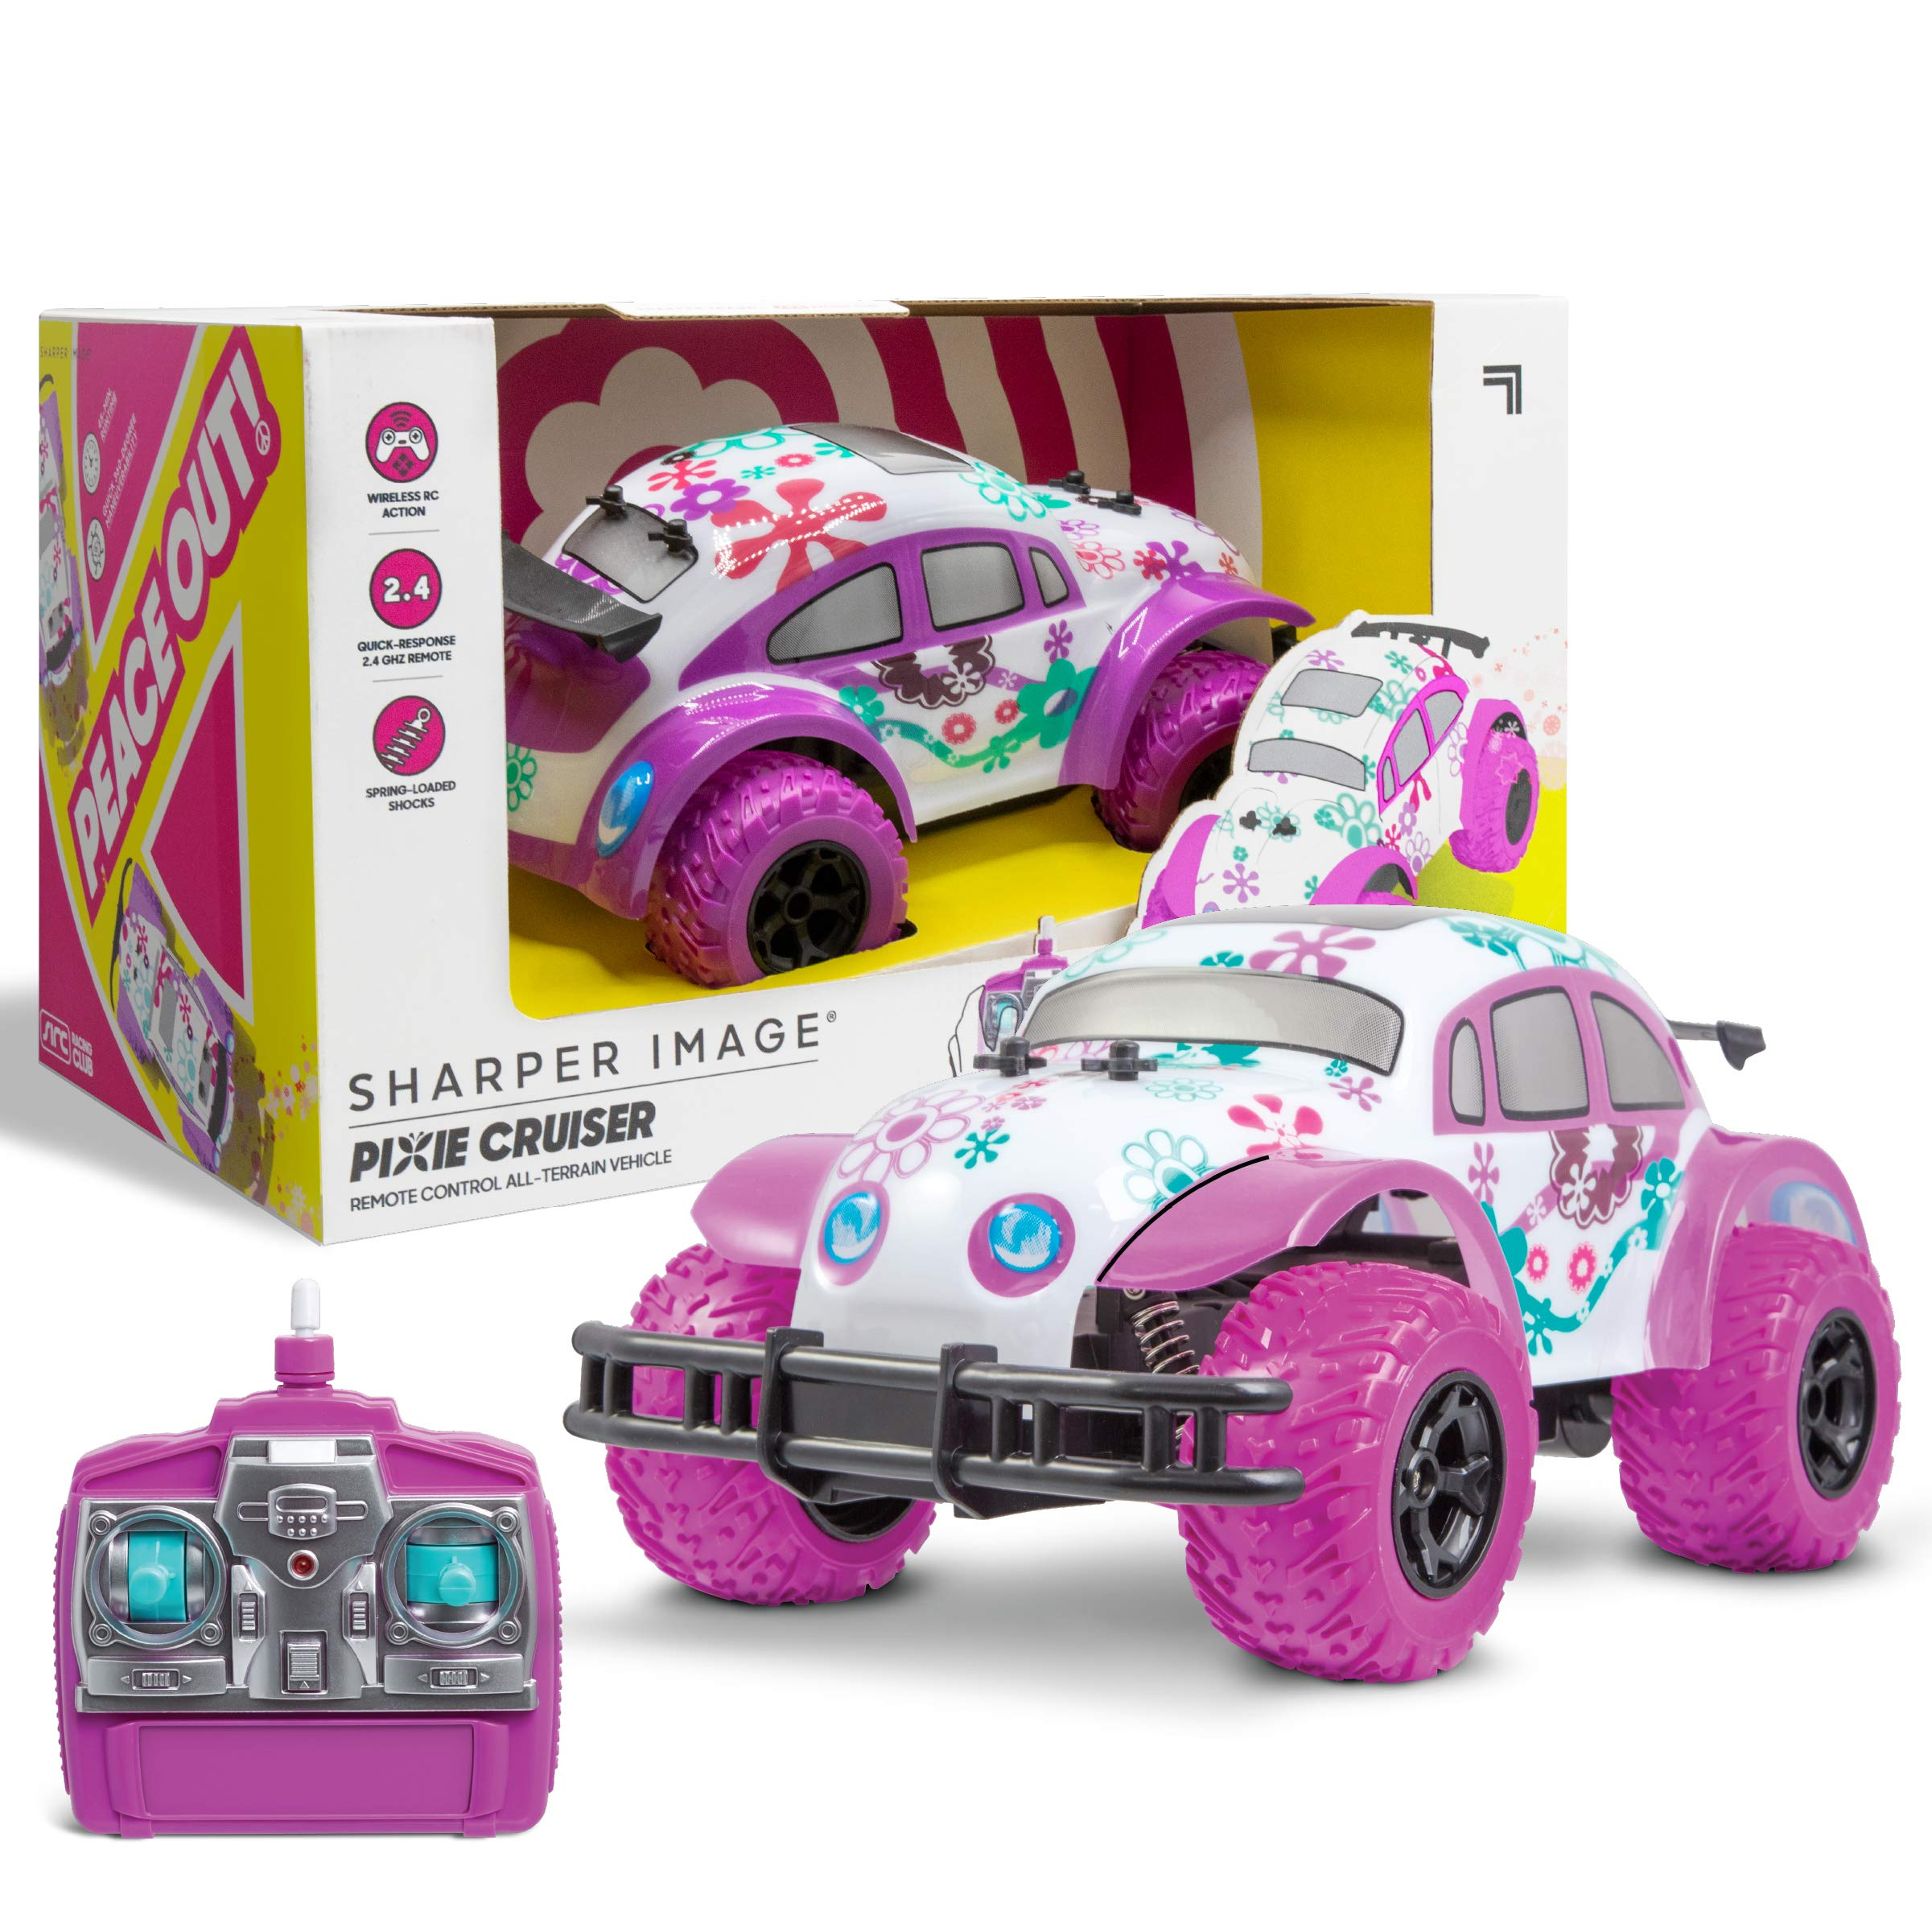 Pixie Cruiser Pink And Purple Rc Remote Control Car Toy For Girls With Off Road Grip Tires Princess Style Big Buggy Crawler Cars Toys W Flowers Design And Shocks Race Up To 5